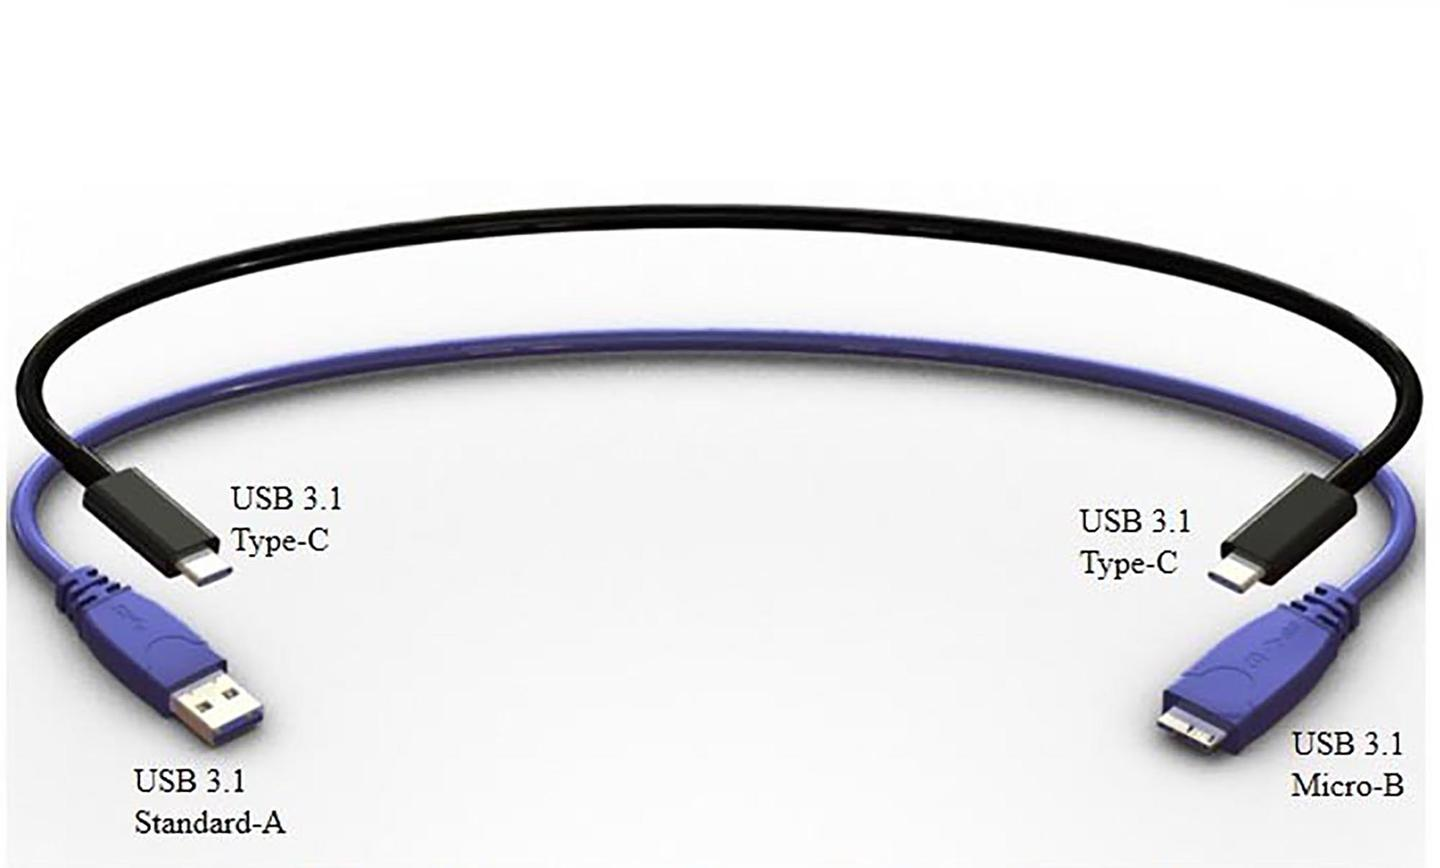 USB 3.1 Type C – the next generation USB cable